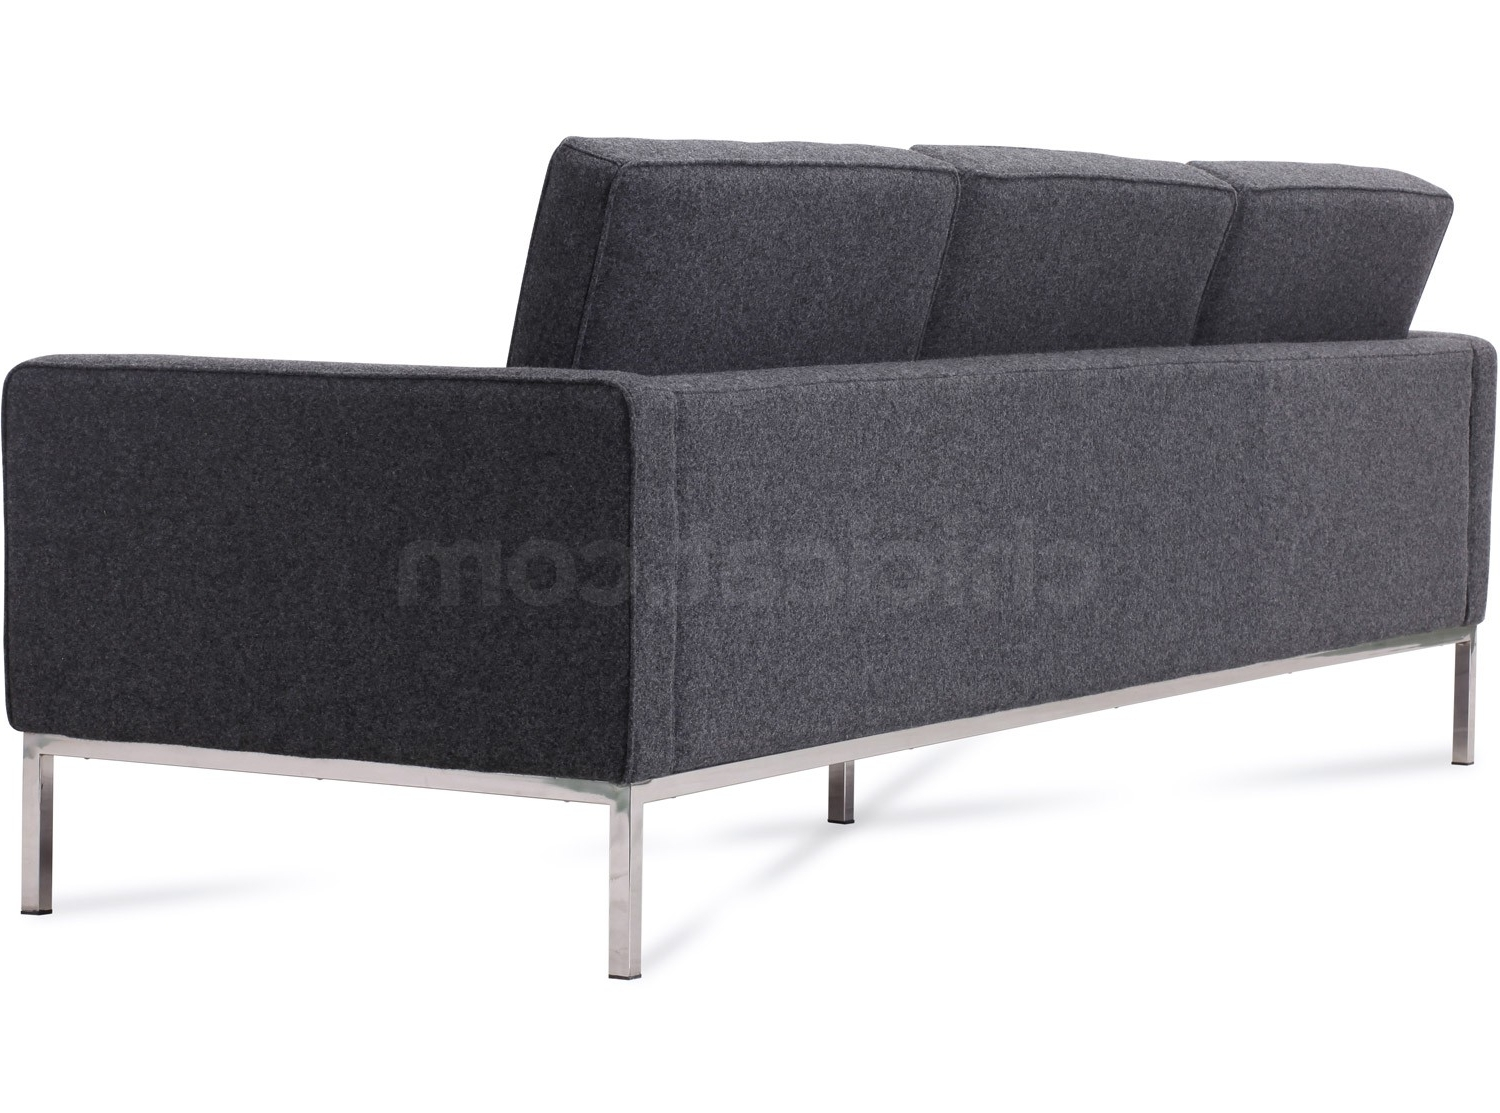 Florence Knoll Sofa 3 Seater Wool (Platinum Replica) Throughout Trendy Florence Knoll 3 Seater Sofas (View 10 of 15)